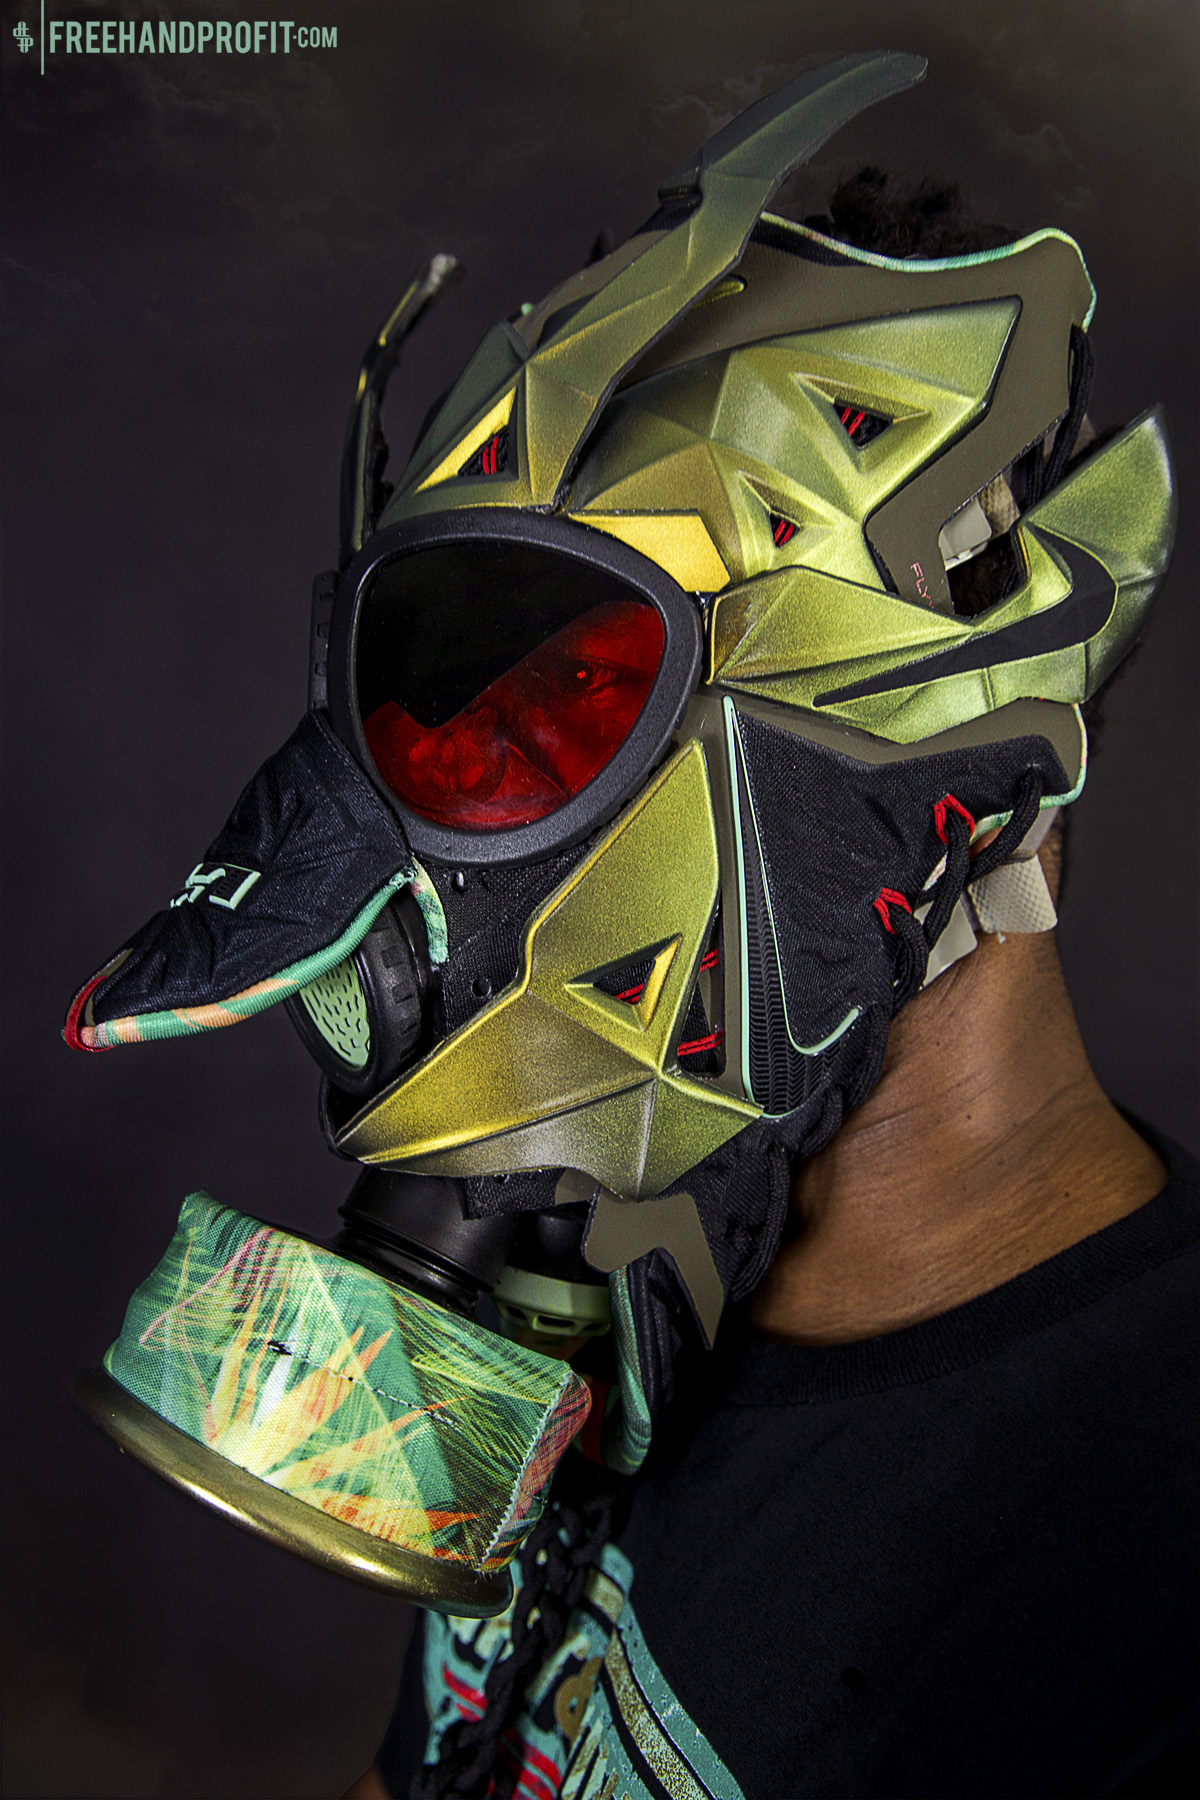 """the latest 17e3a 89855 ... Lebron 11 (XI) """"Kings Pride"""" Mask by Freehand Profit   THE ."""